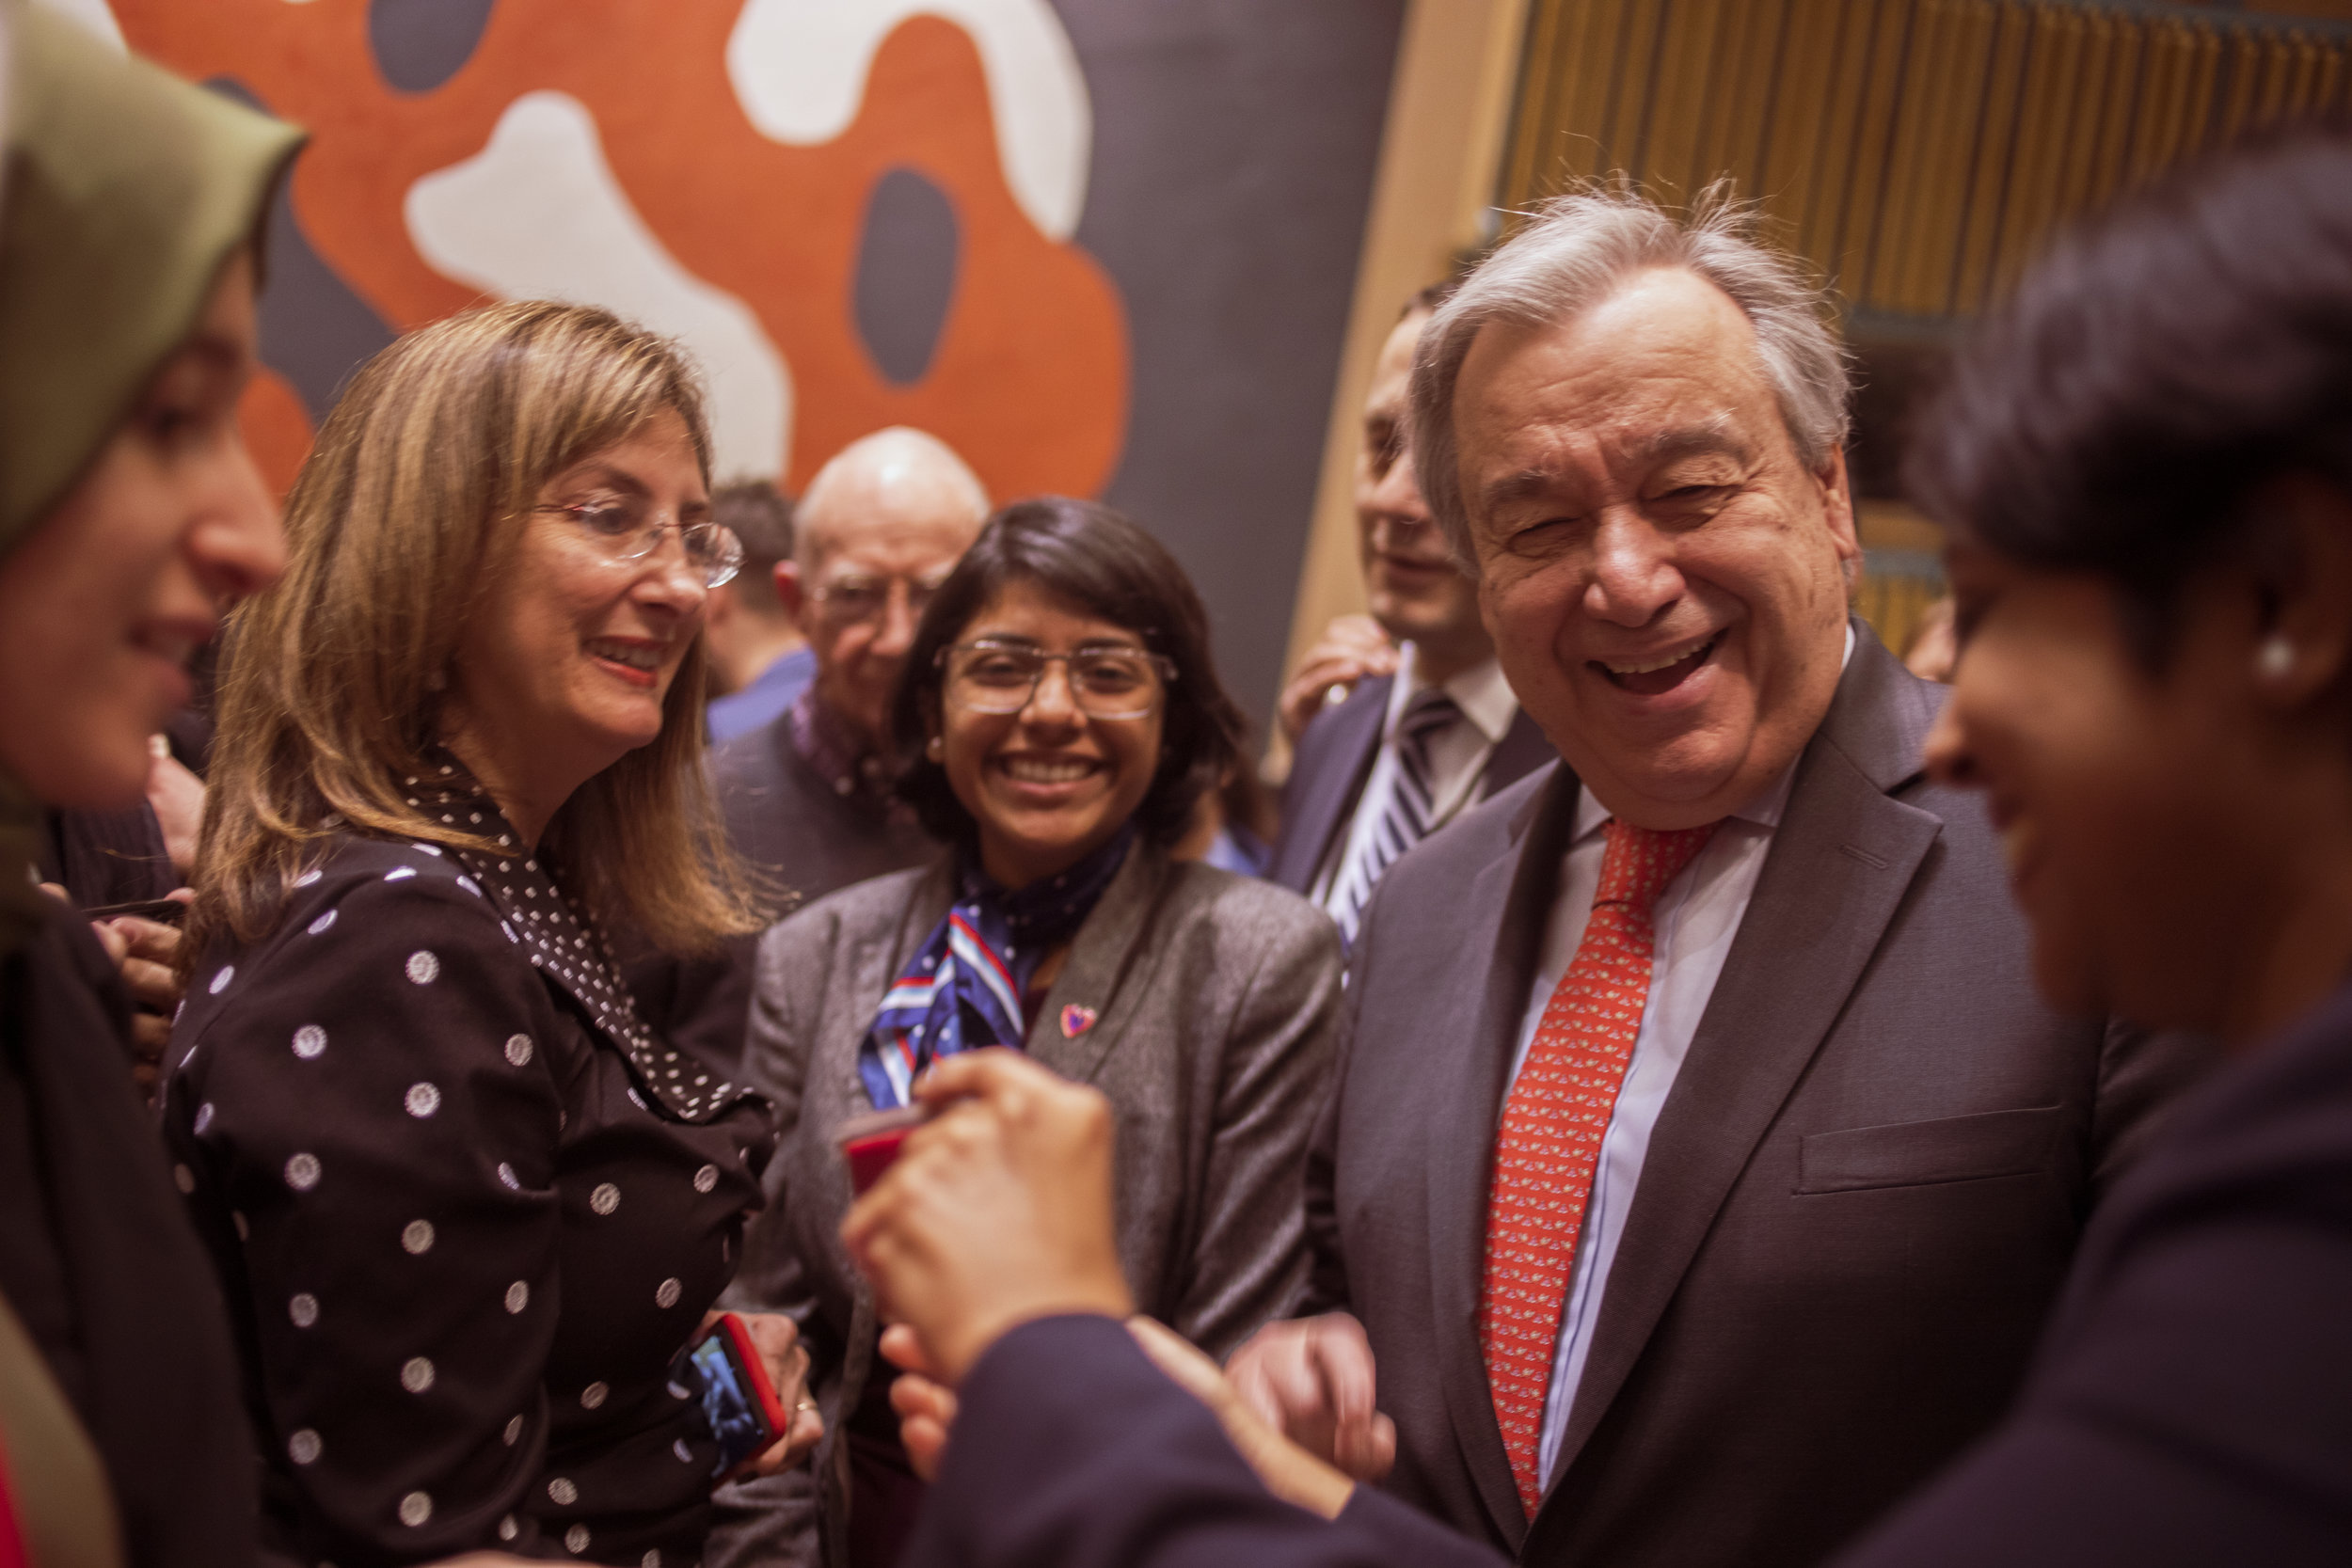 UN Secretary-General António Guterres can be seen in the crowd with Sana'a Hussien, Chair of Special Initiatives for UNA Chicago. Photo courtesy of Christopher Dowell Photography.